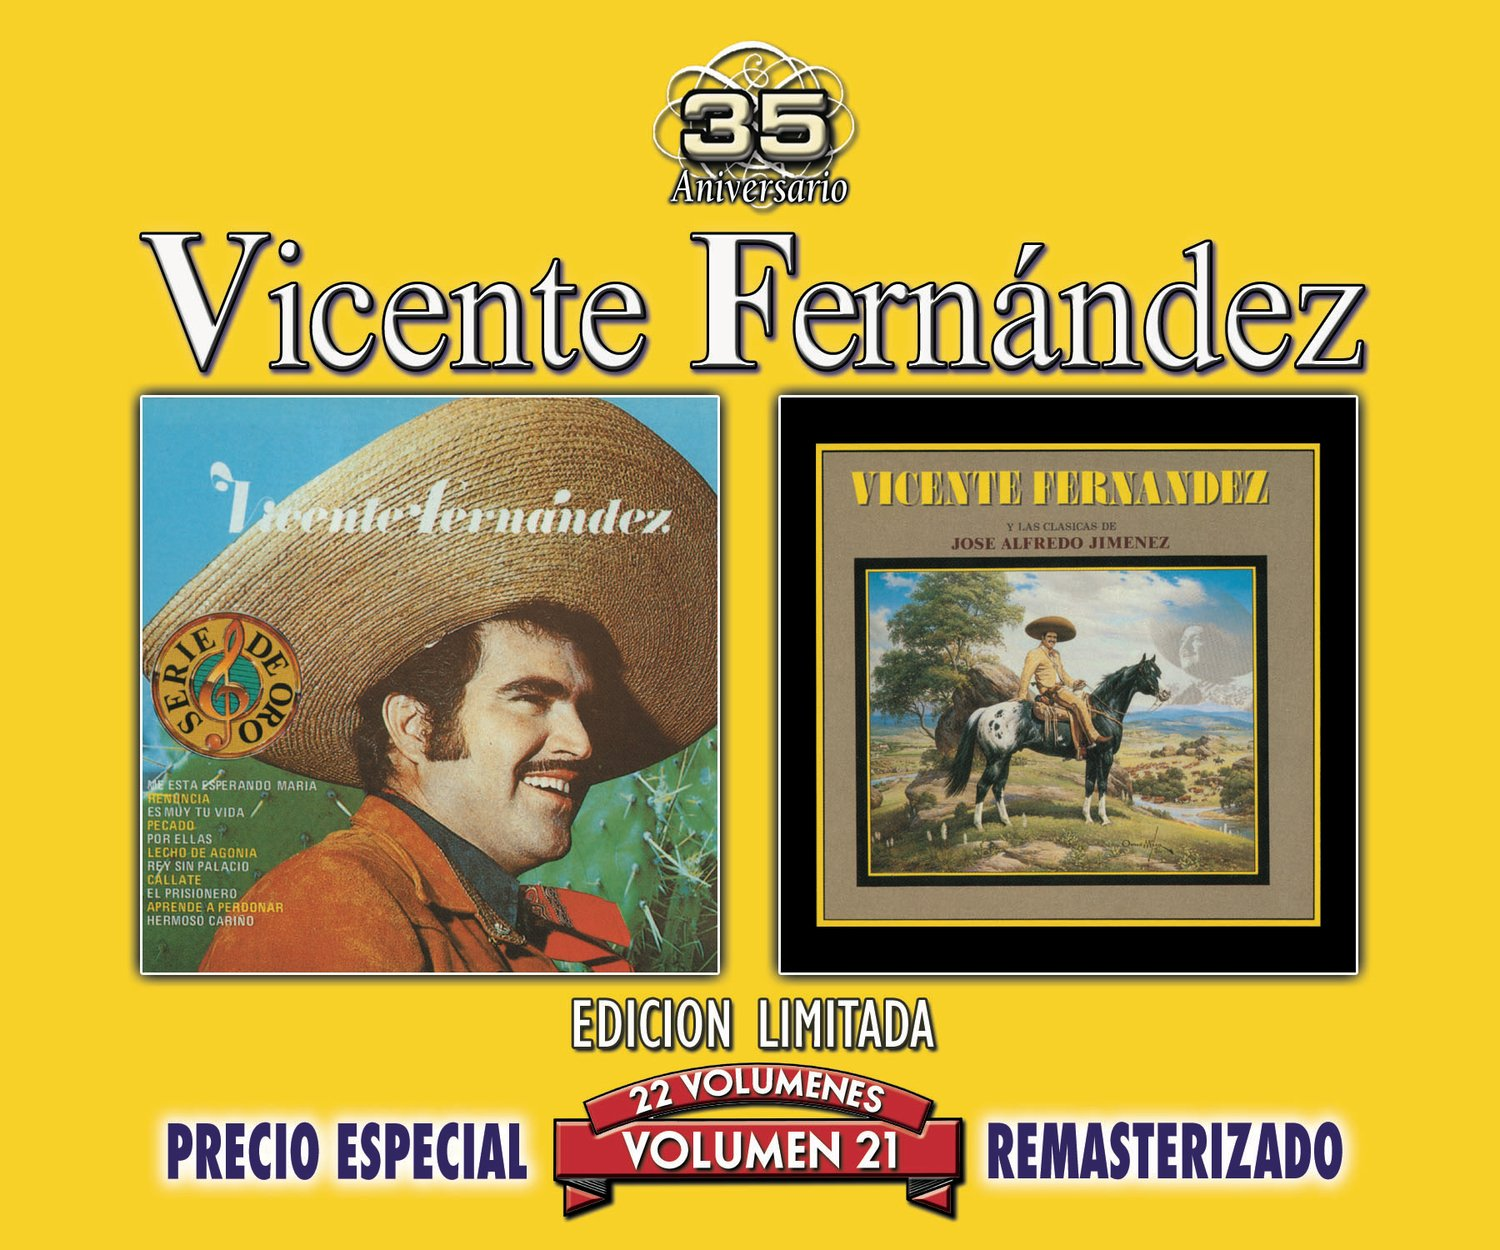 35 Anniversary Re-mastered Series, Vol. 21 by Sony U.S. Latin